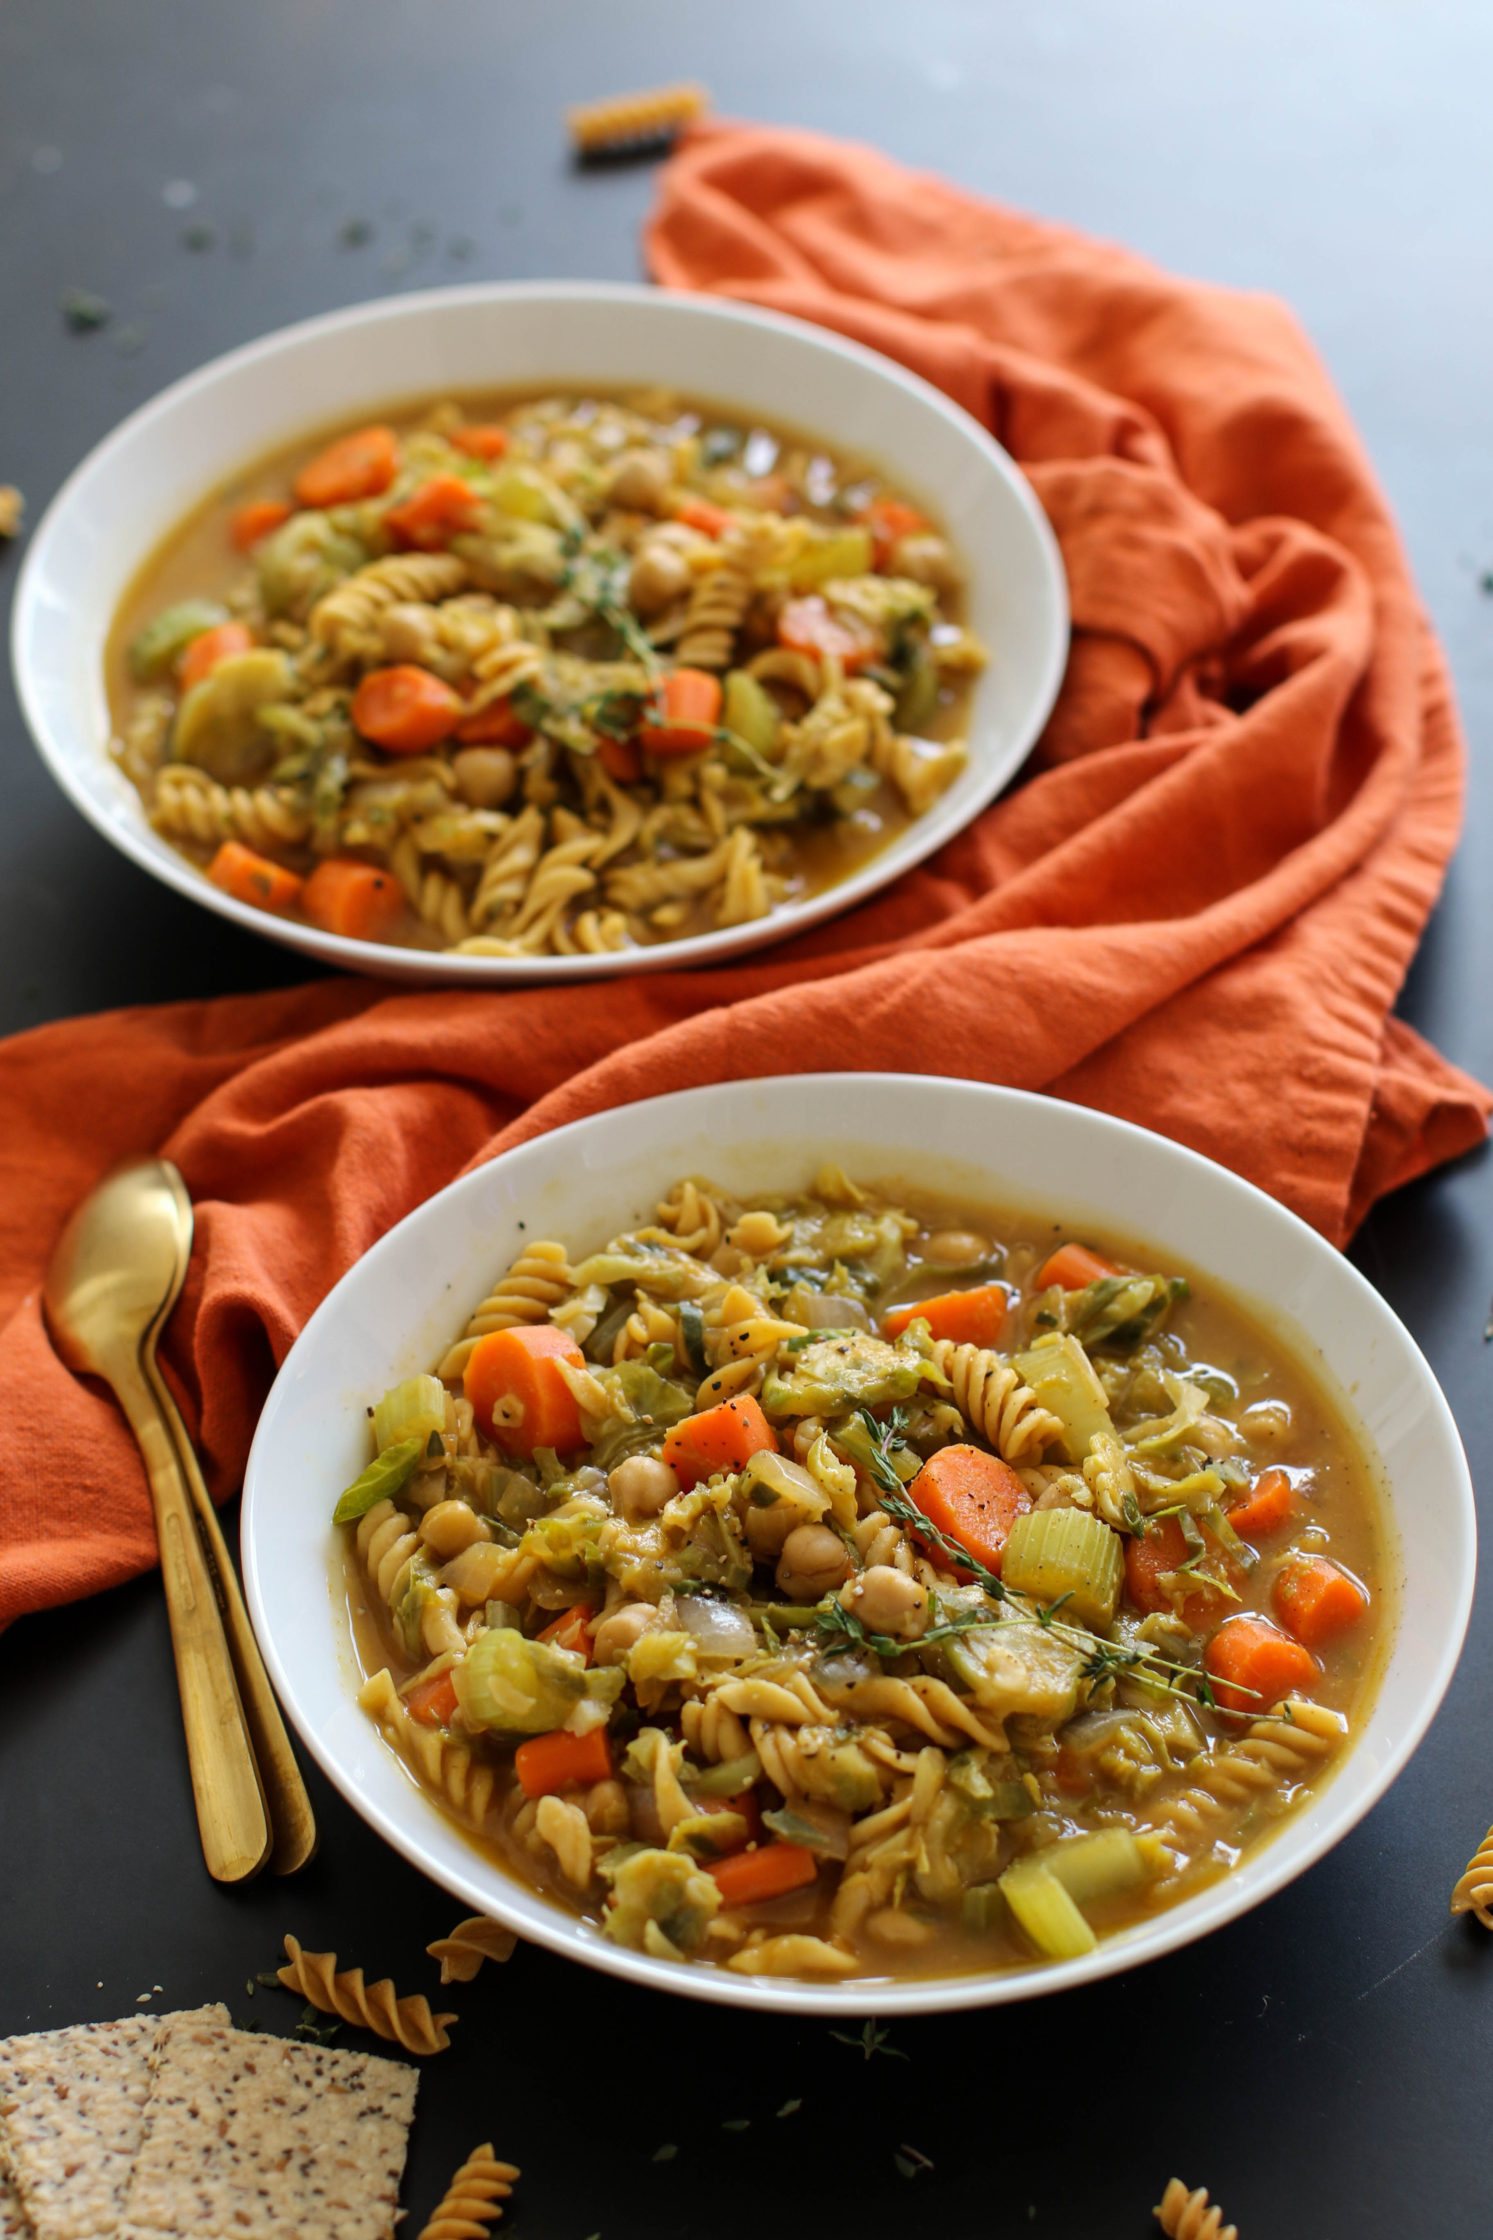 Chunky Chickpea Noodle Soup with Brussel Sprouts